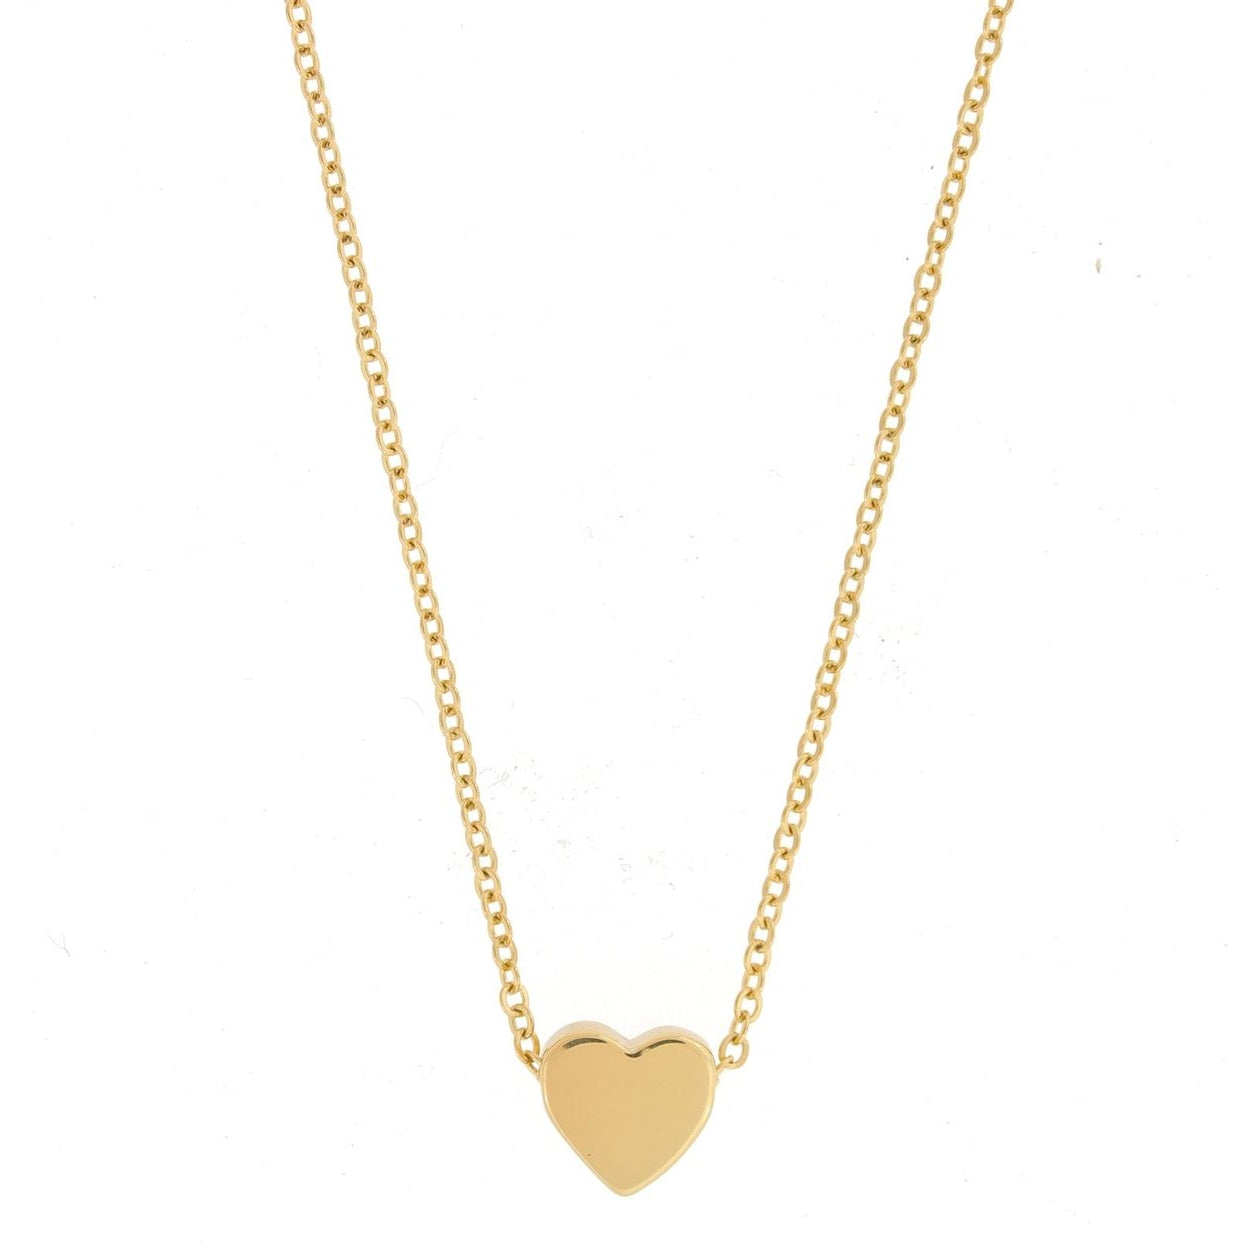 Mini Heart Necklace 18k Gold Plated